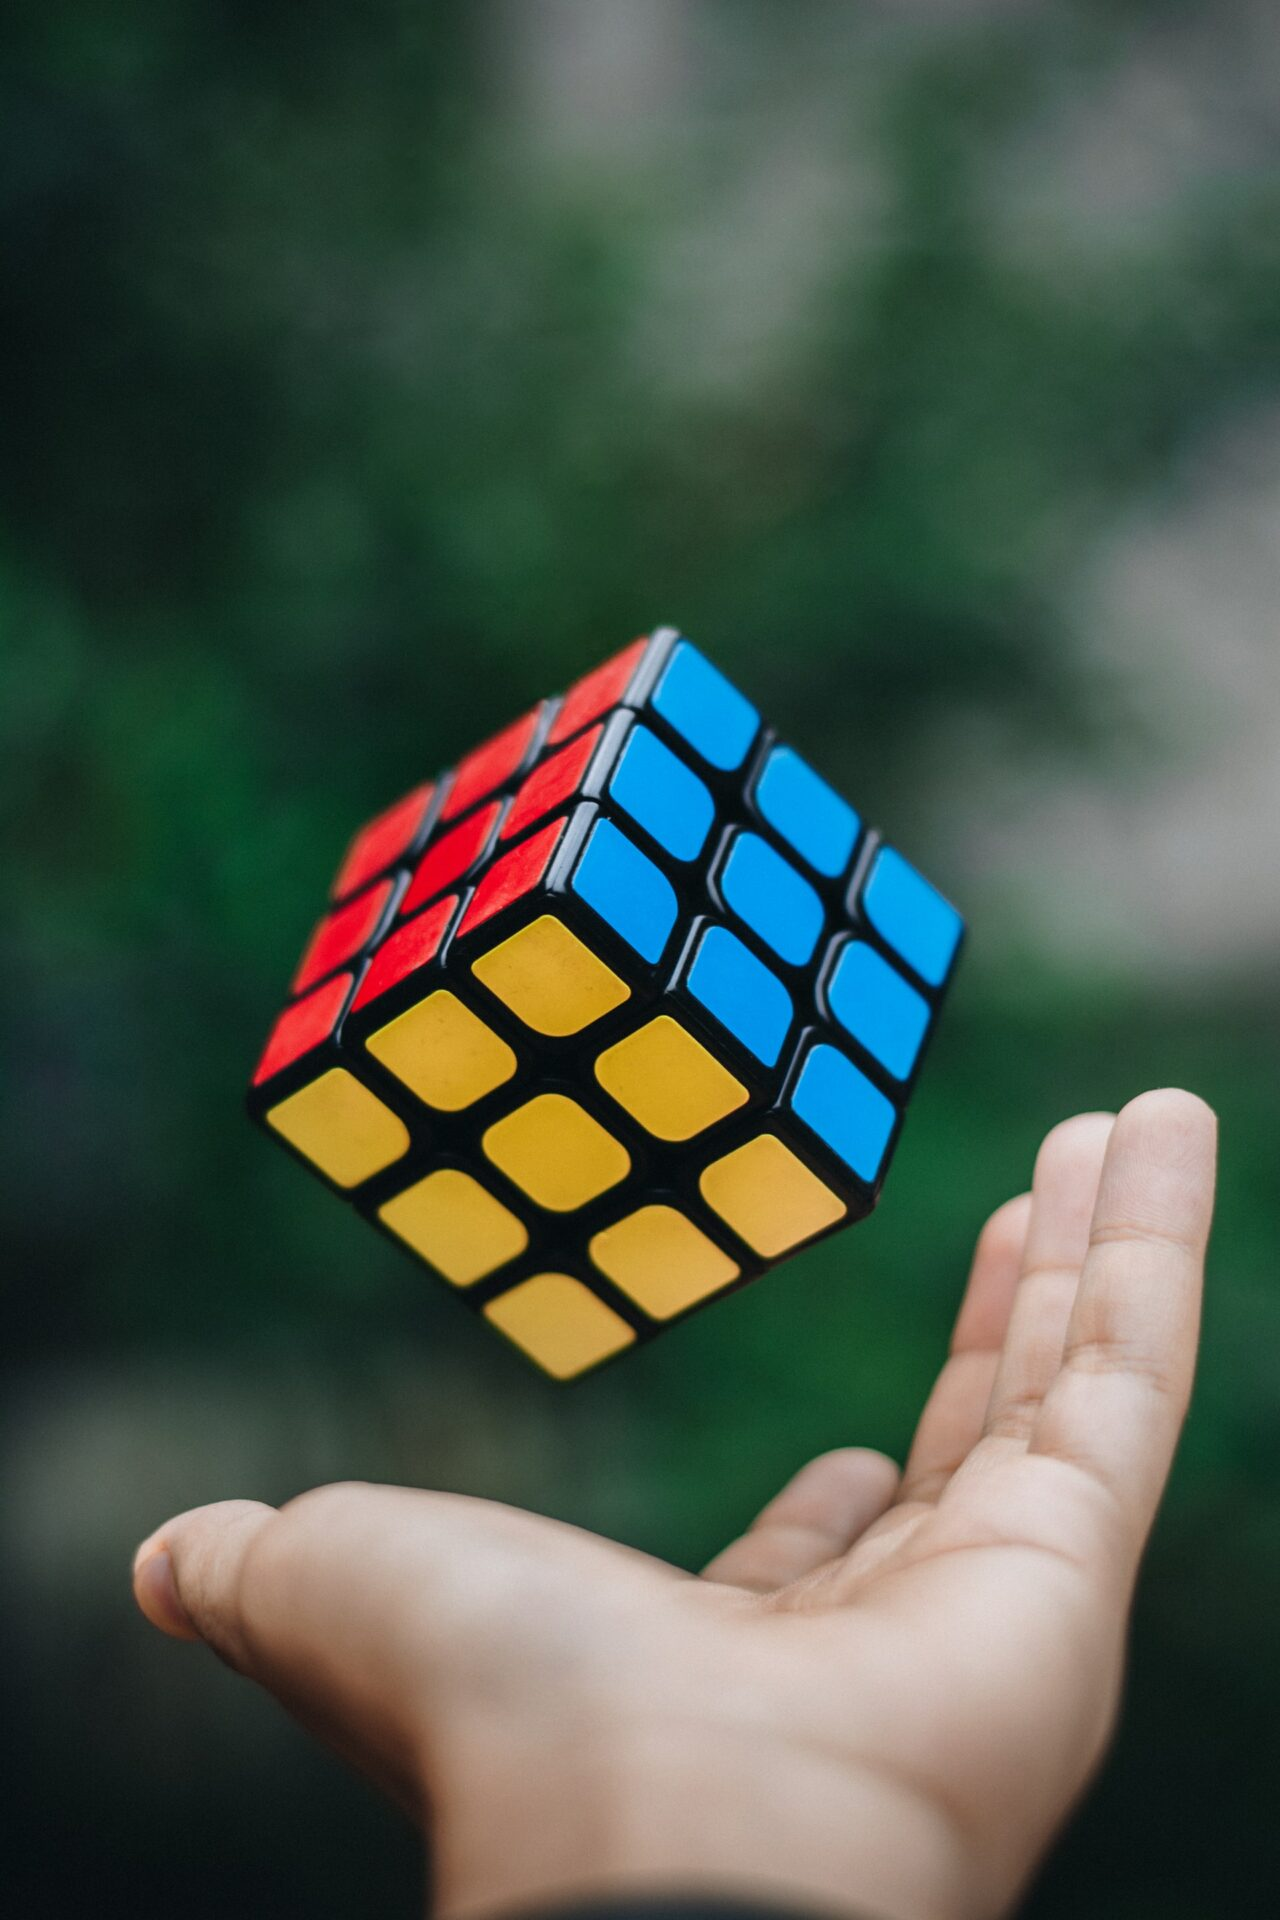 This image is of a Rubix Cube as it has been thrown in the area. The Rubix cube is in perfect formation, not jumbled.